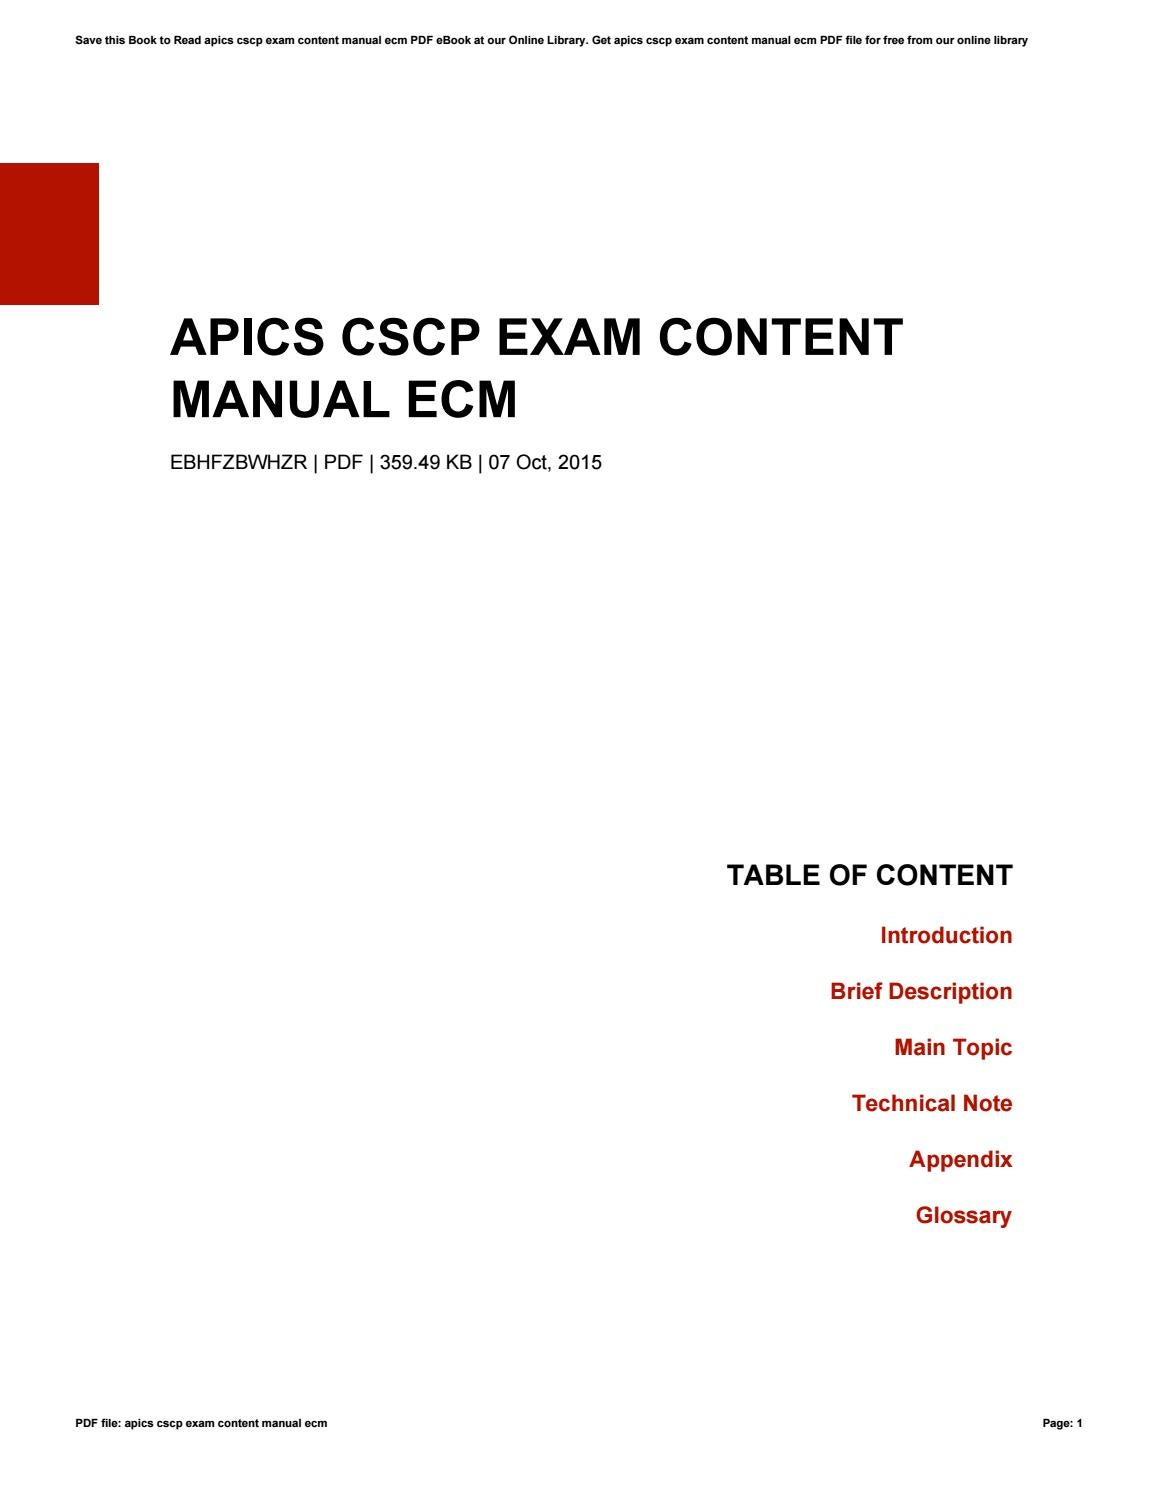 Apics cscp exam content manual ecm by JanetAlejandre4625